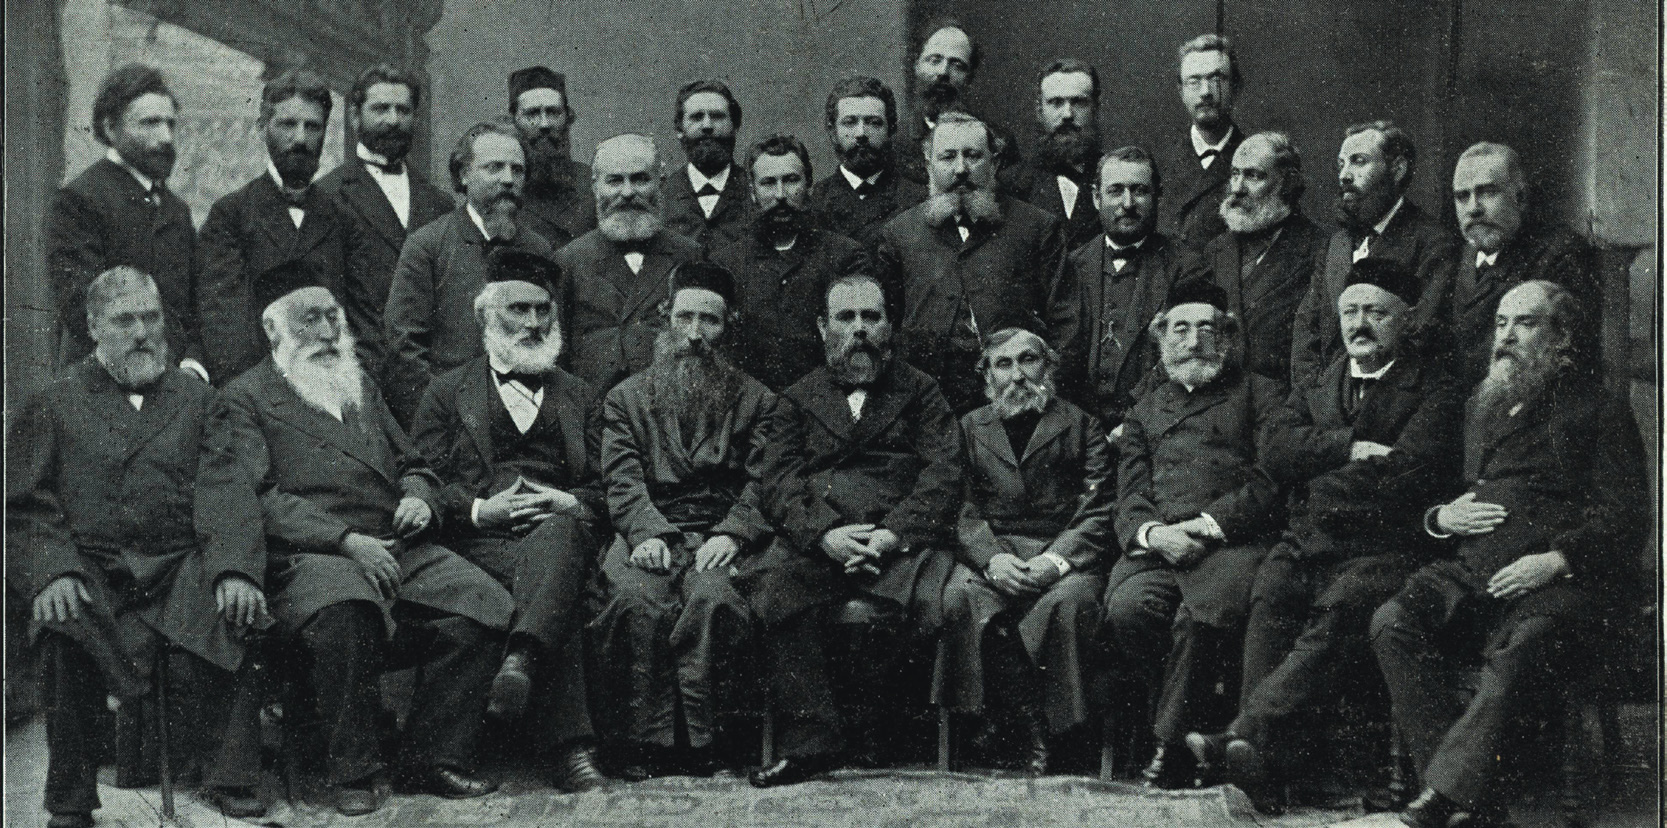 Delegates at the Katowice Conference were ahead of their time. The proportion of bearded and skullcap-wearing delegates far exceeded that at later Zionist congresses, a sign of the secularization of the Zionist movement